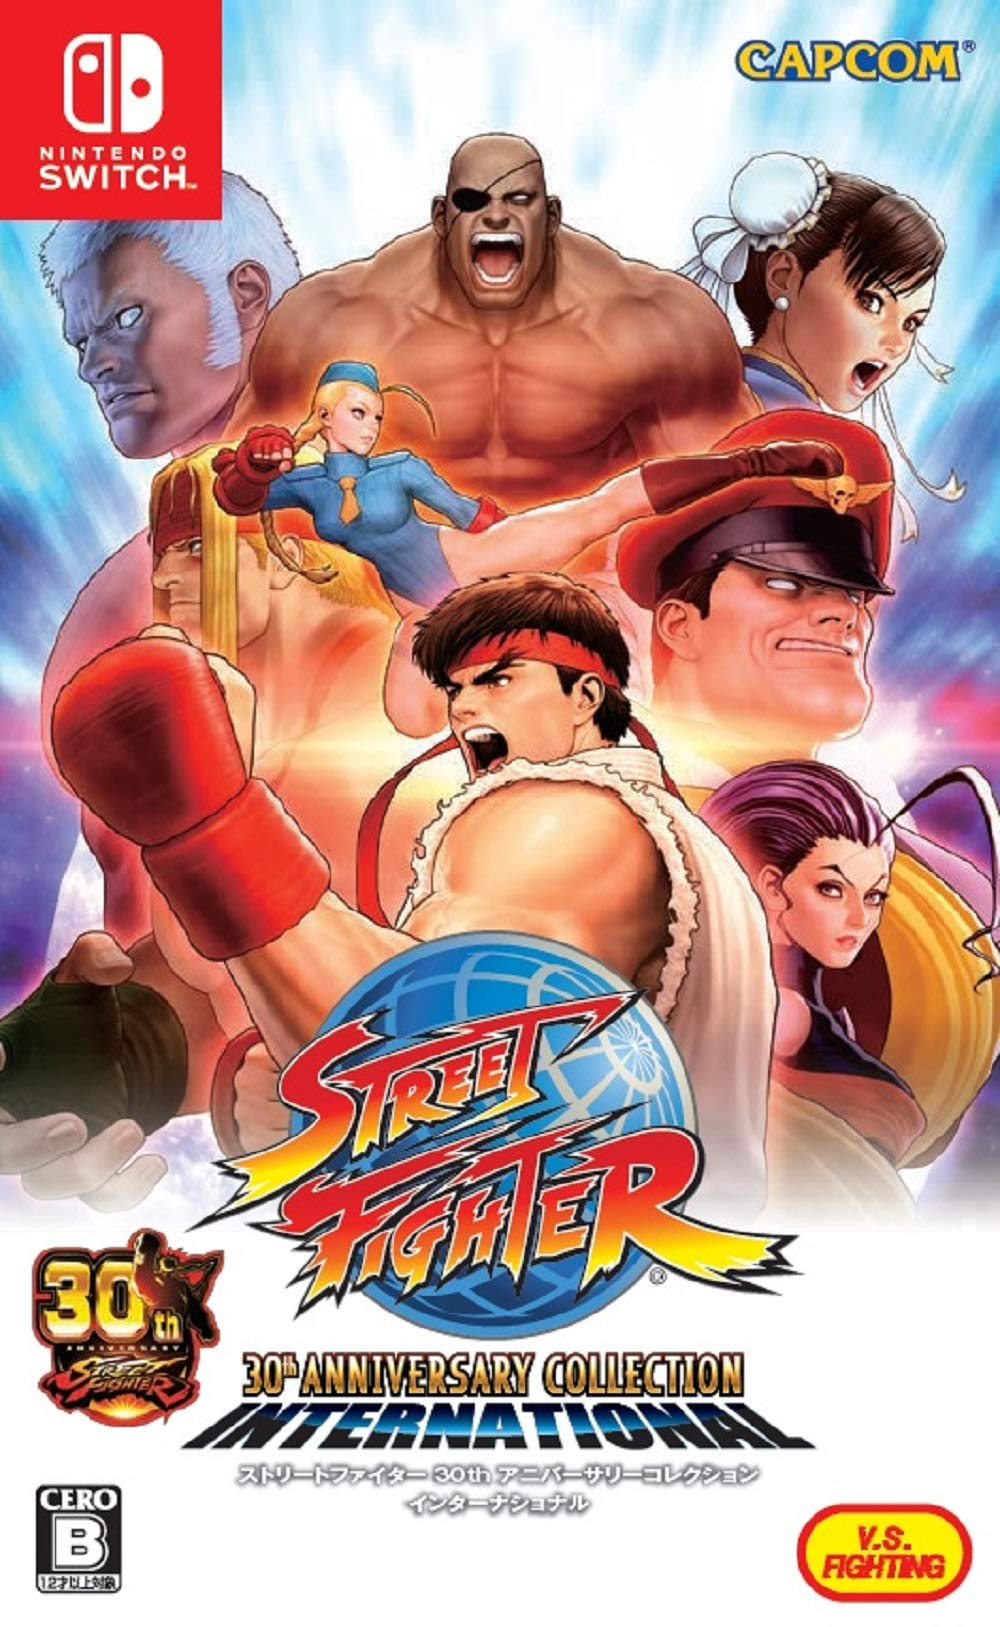 Capcom Street Fighter 30th Anniversary Collection International NINTENDO SWITCH JAPANESE IMPORT REGION FREE [video game]: Amazon.es: Videojuegos